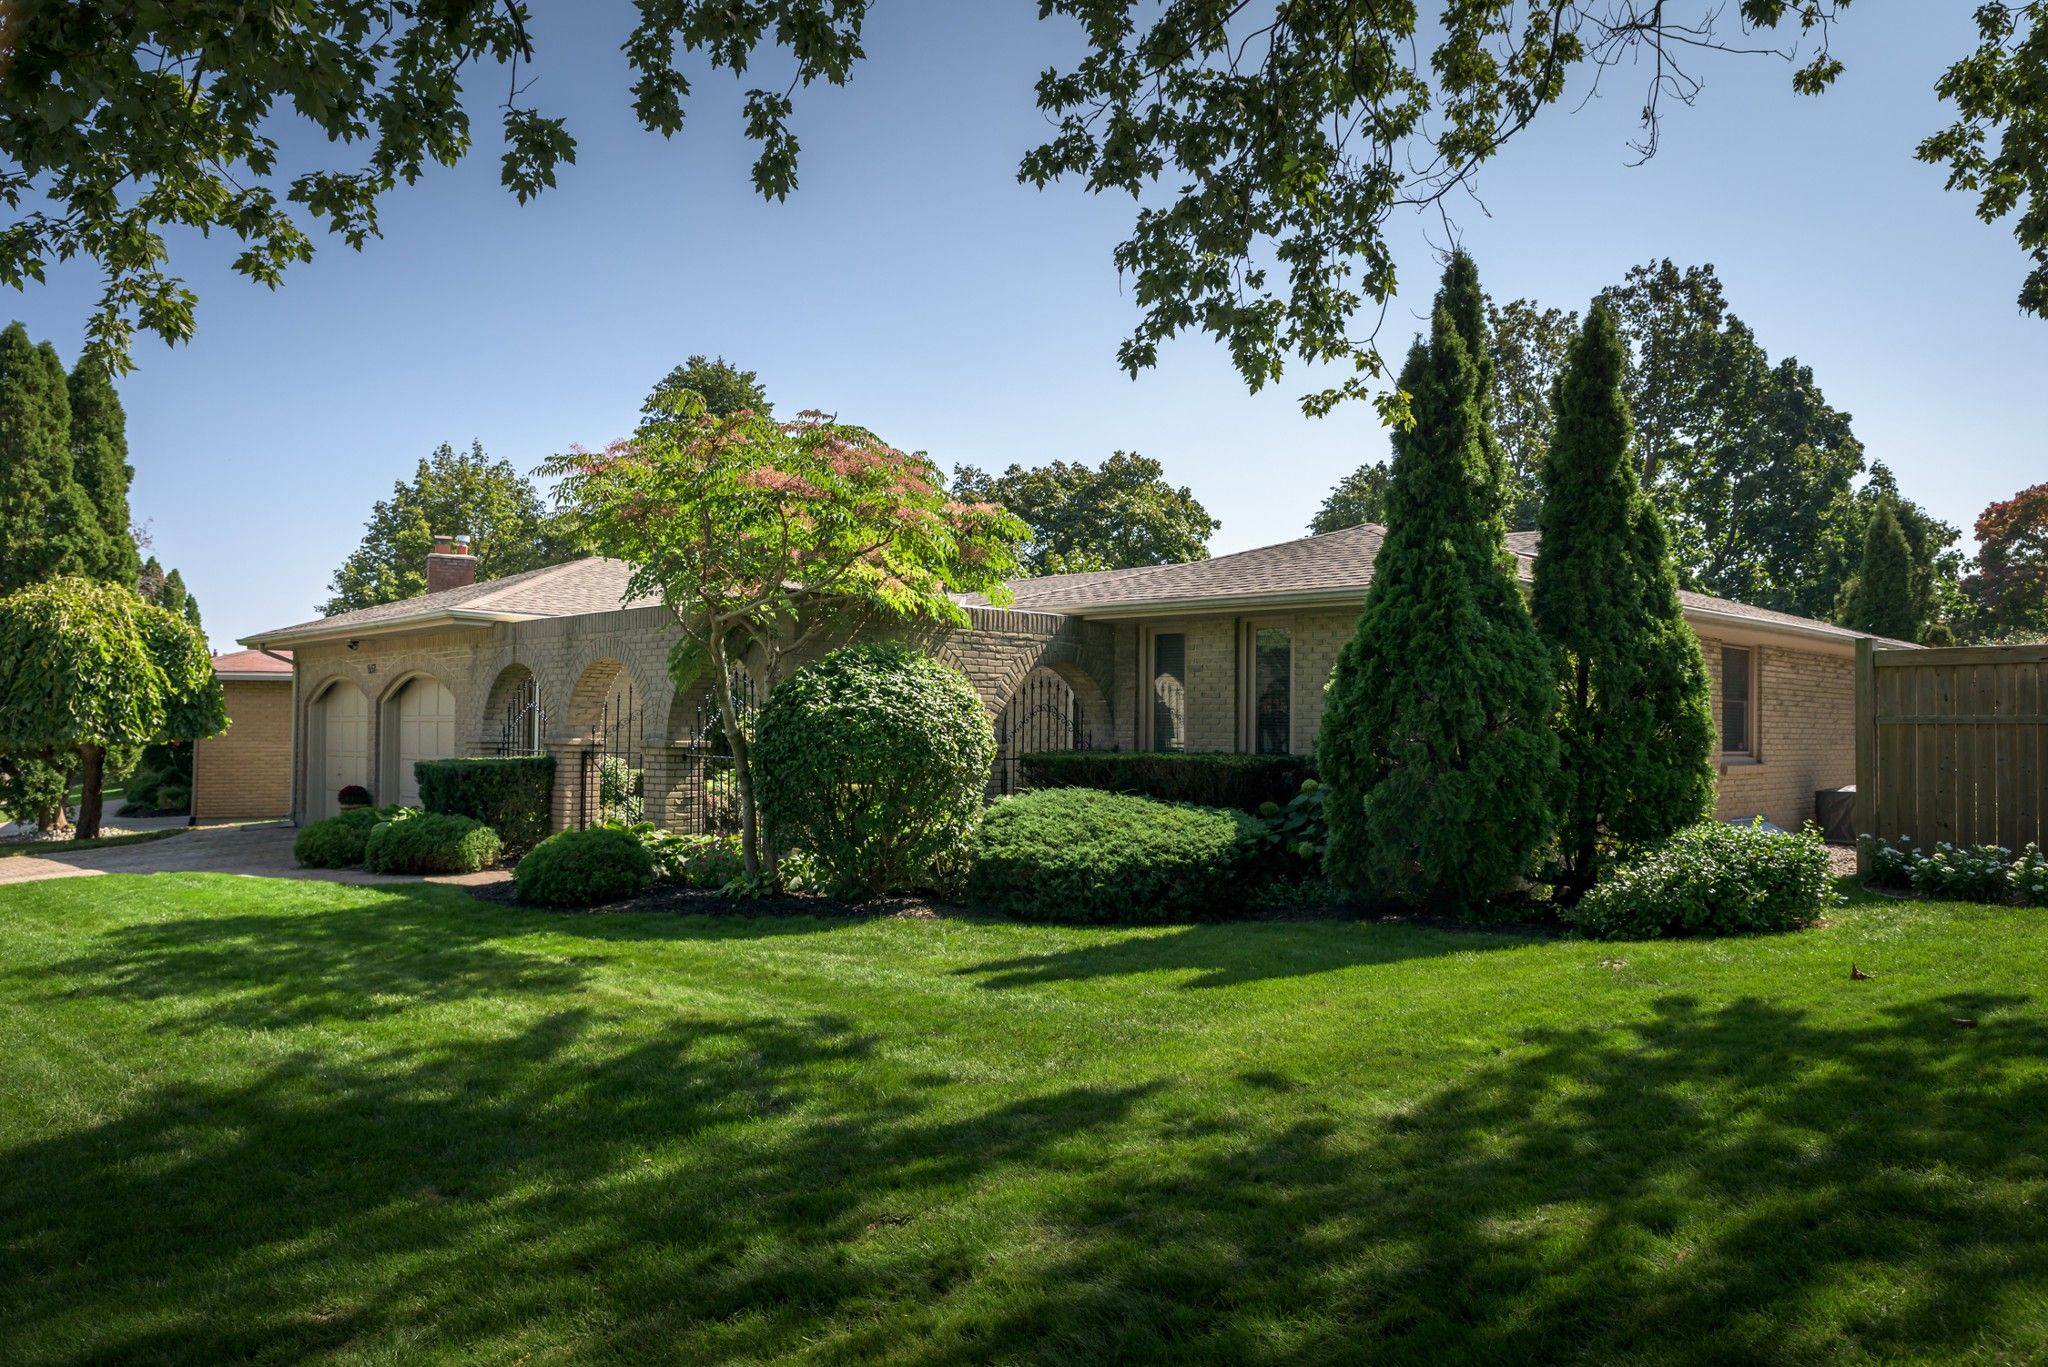 Main Photo: 857 BERKSHIRE Drive in London: Property for sale : MLS®# 40027530